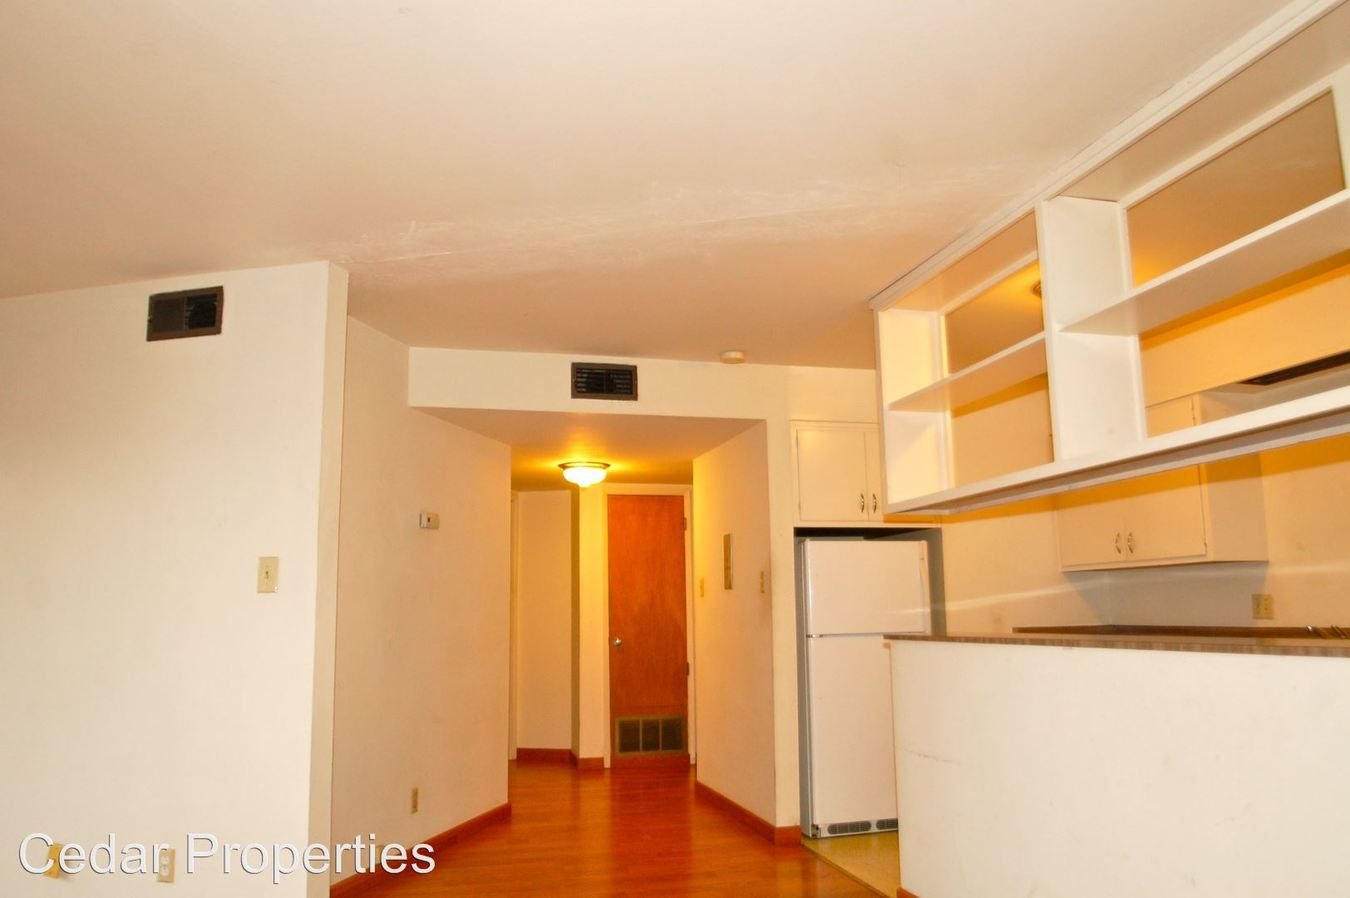 2 Bedrooms 1 Bathroom Apartment for rent at 740 Oakland Avenue in Oakland, CA